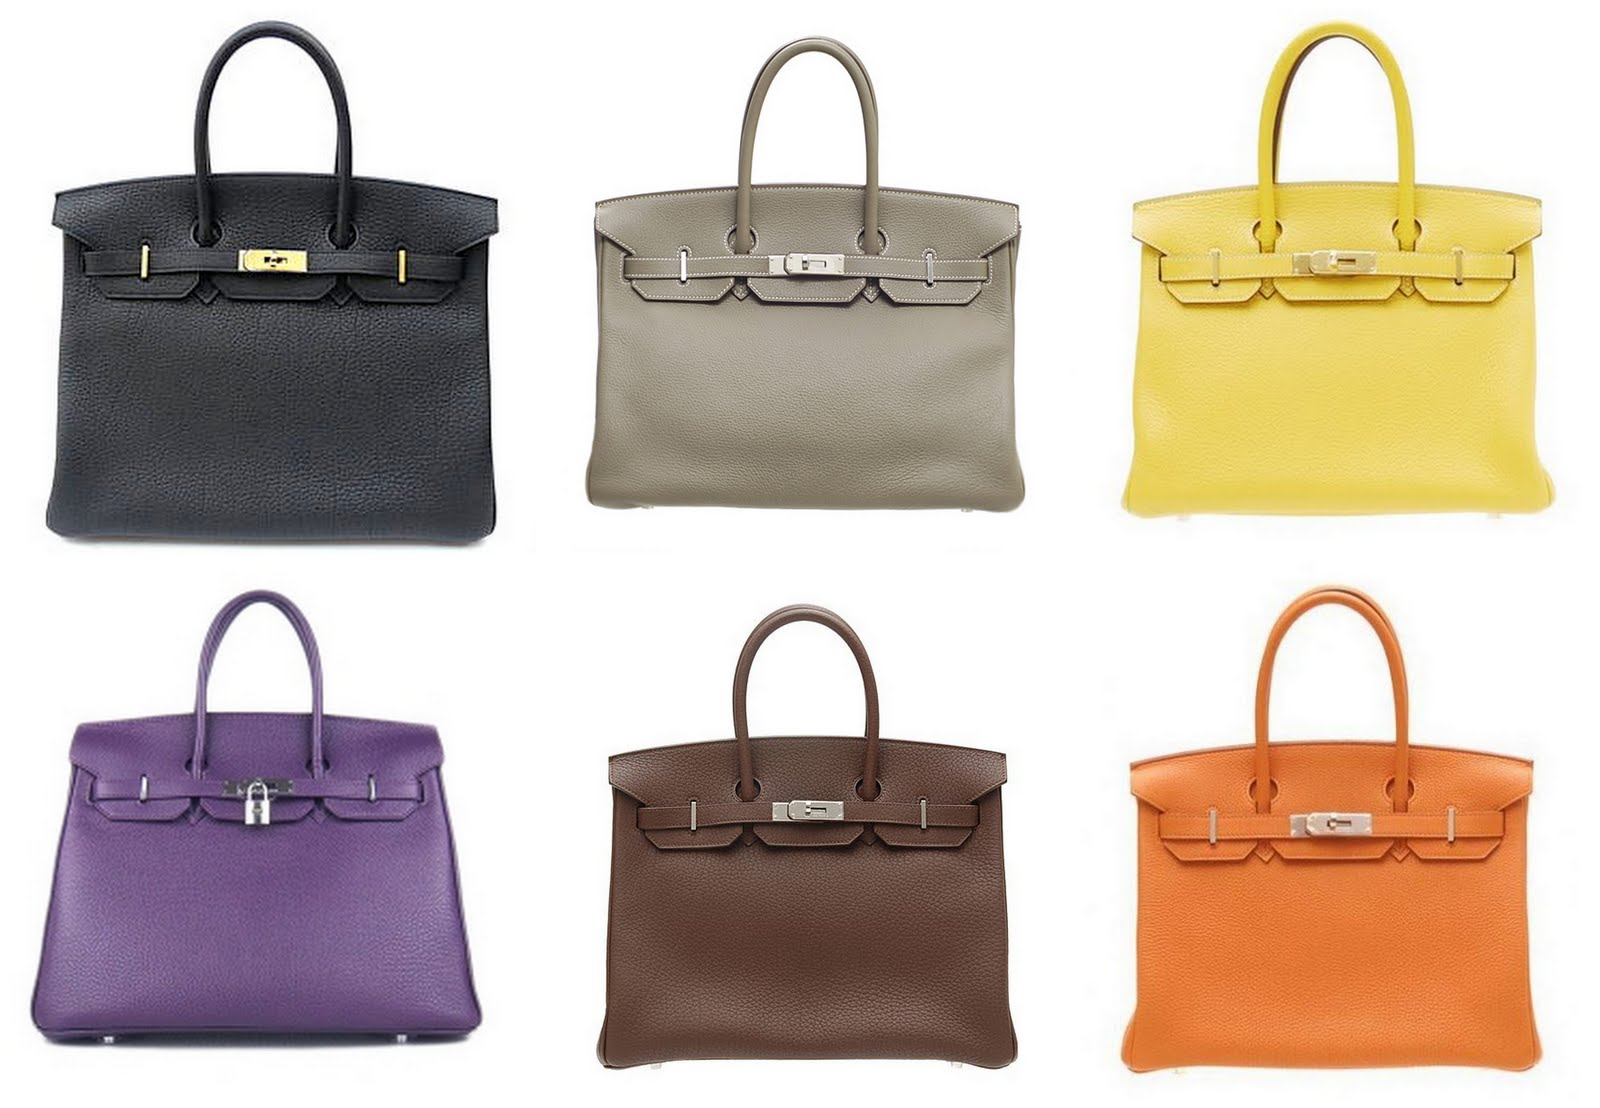 birkin bag the birkin bag is one of the